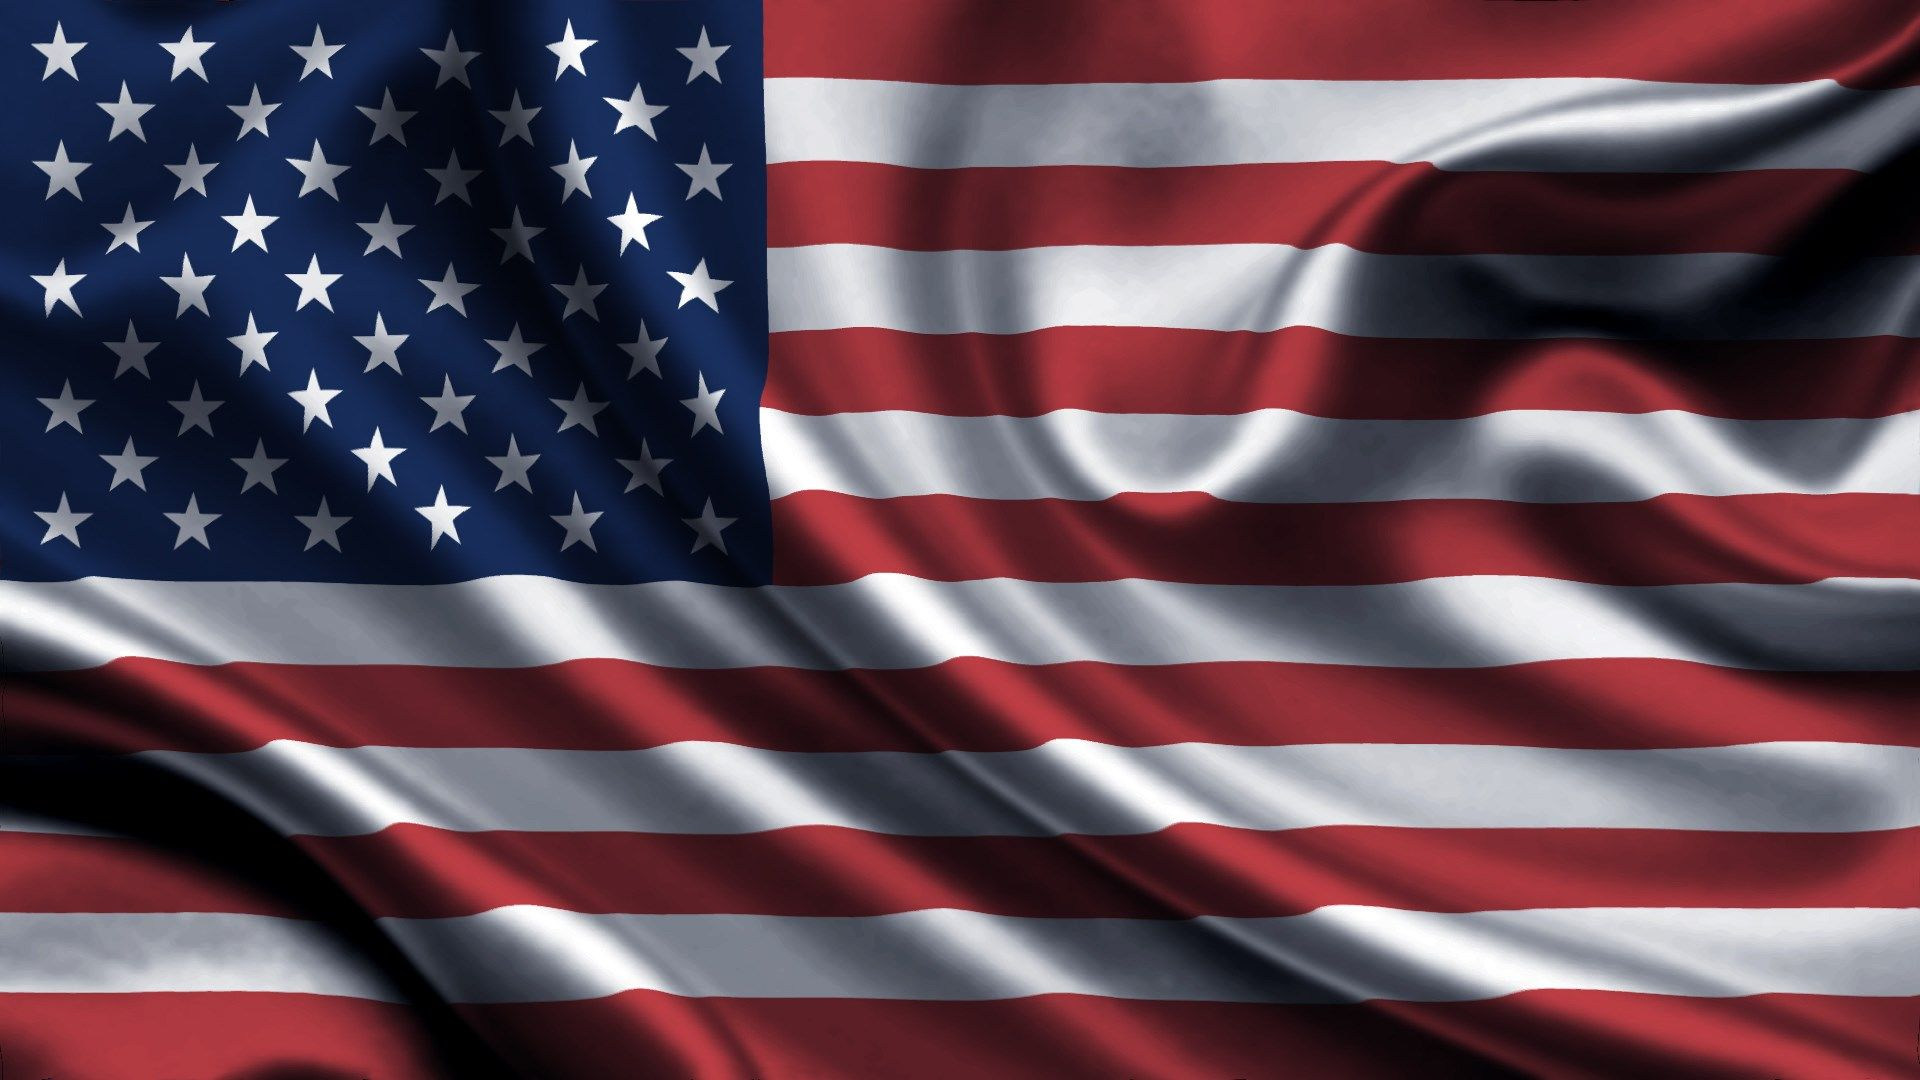 American Flag Desktop Backgrounds Wallpaper   American Flag Category